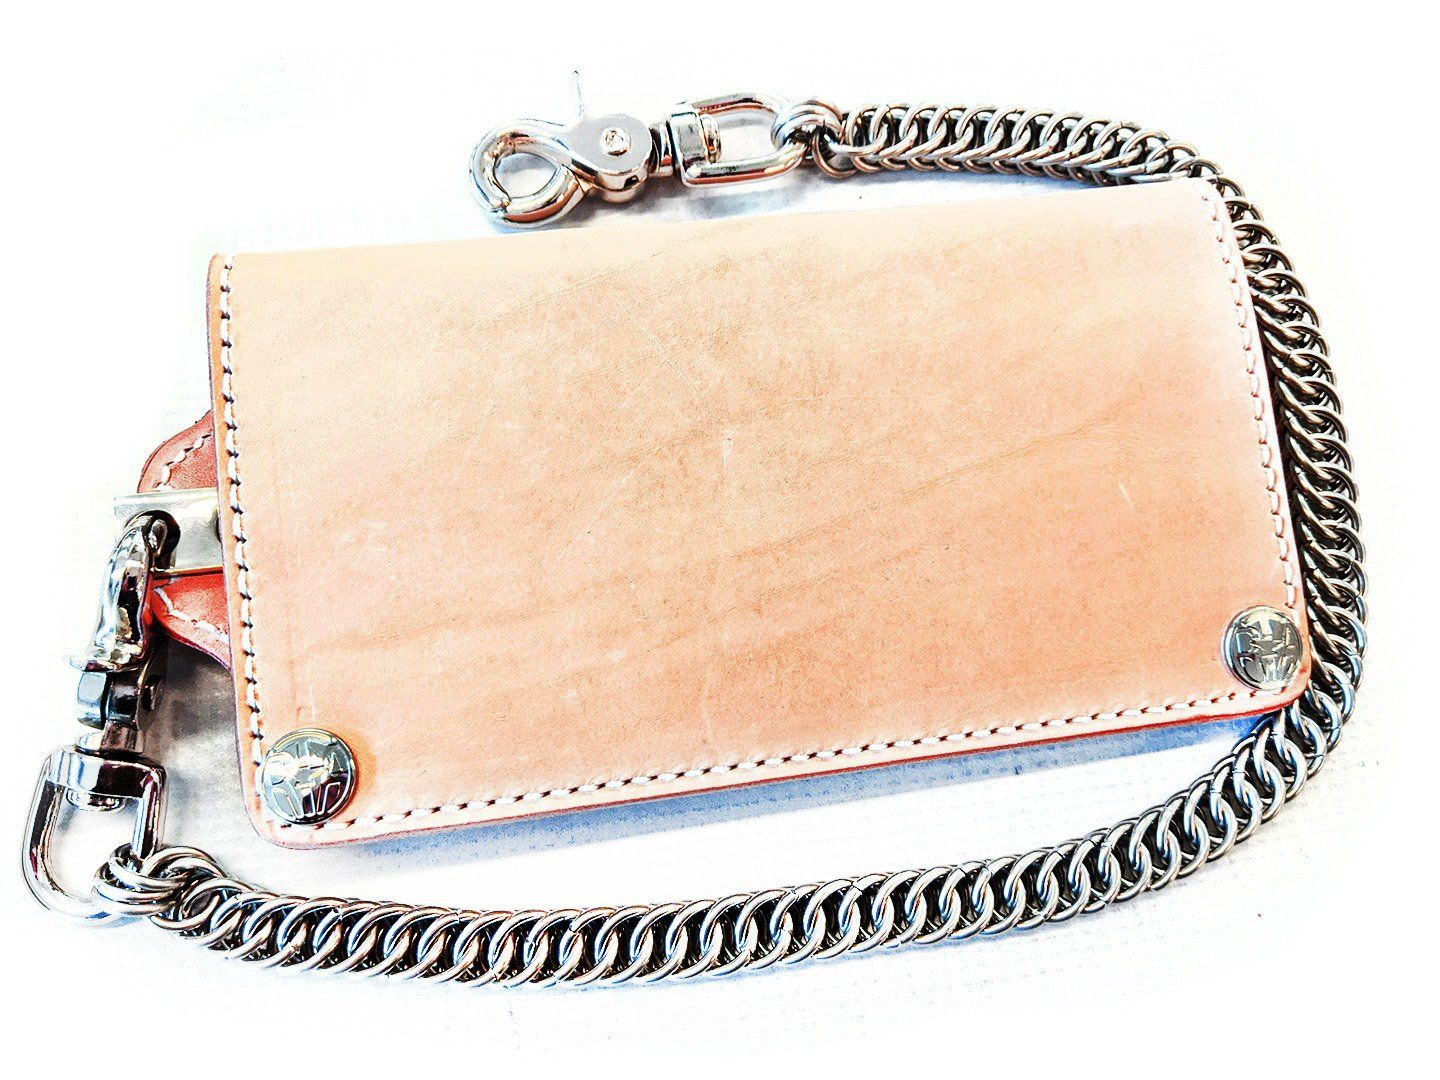 Long Biker Leather Chain Wallet - Natural Cowhide